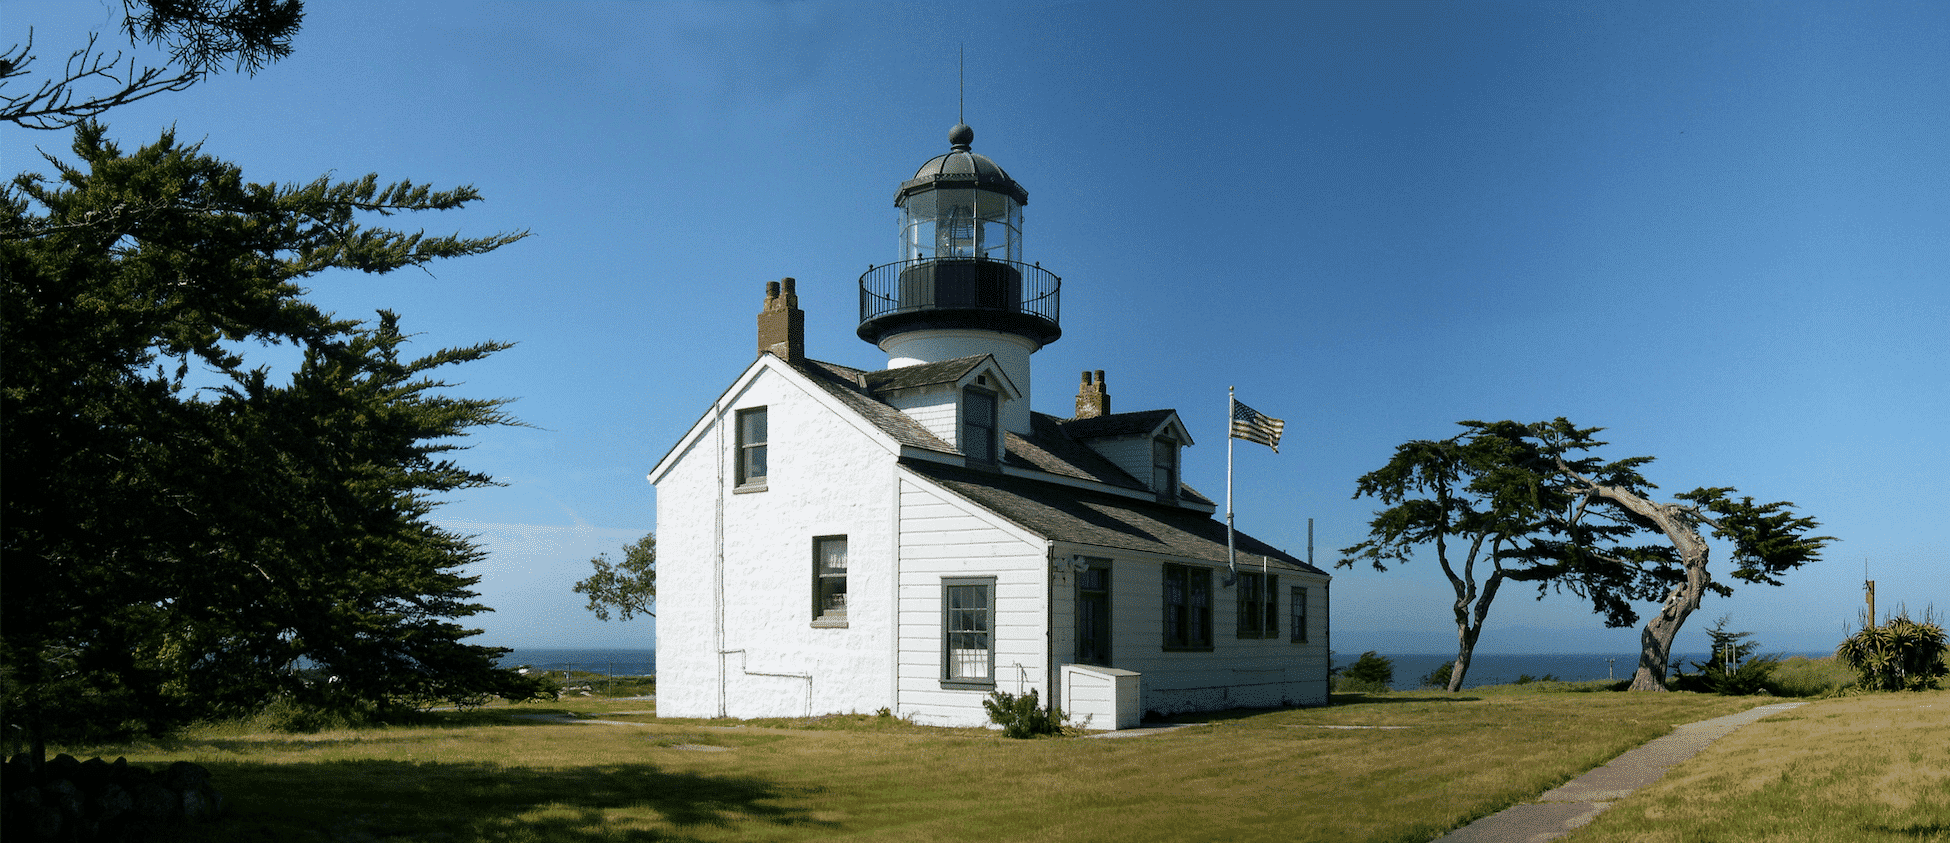 Point Pinos Lighthouse on a bright sunny day with clear blue skies